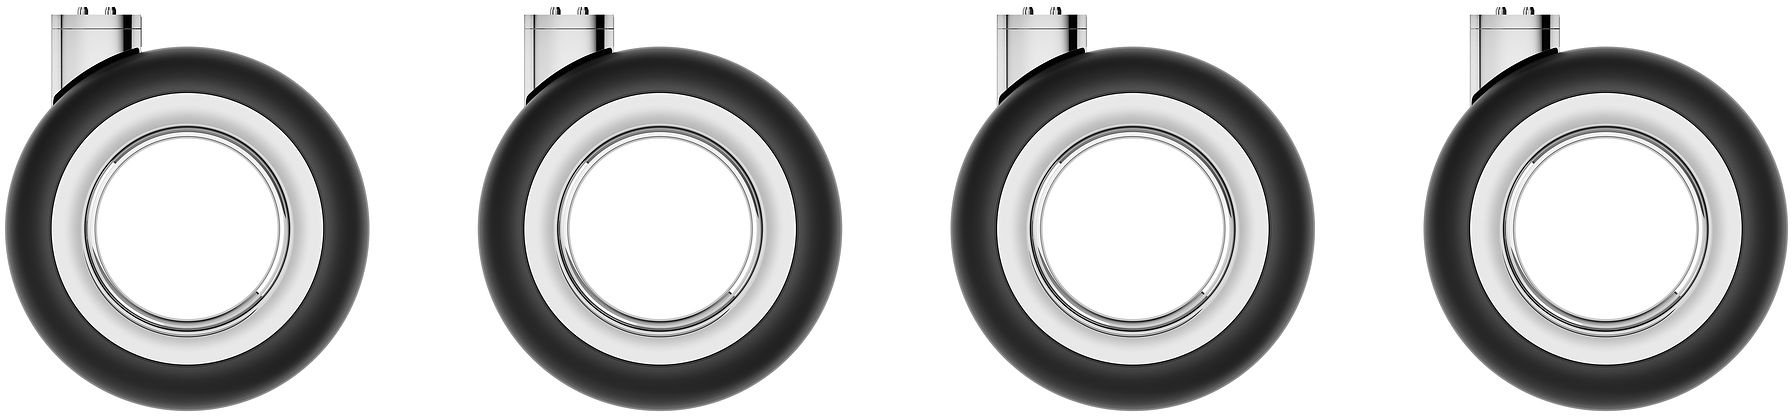 Apple Offering $700 Kit to Add Wheels to the Mac Pro